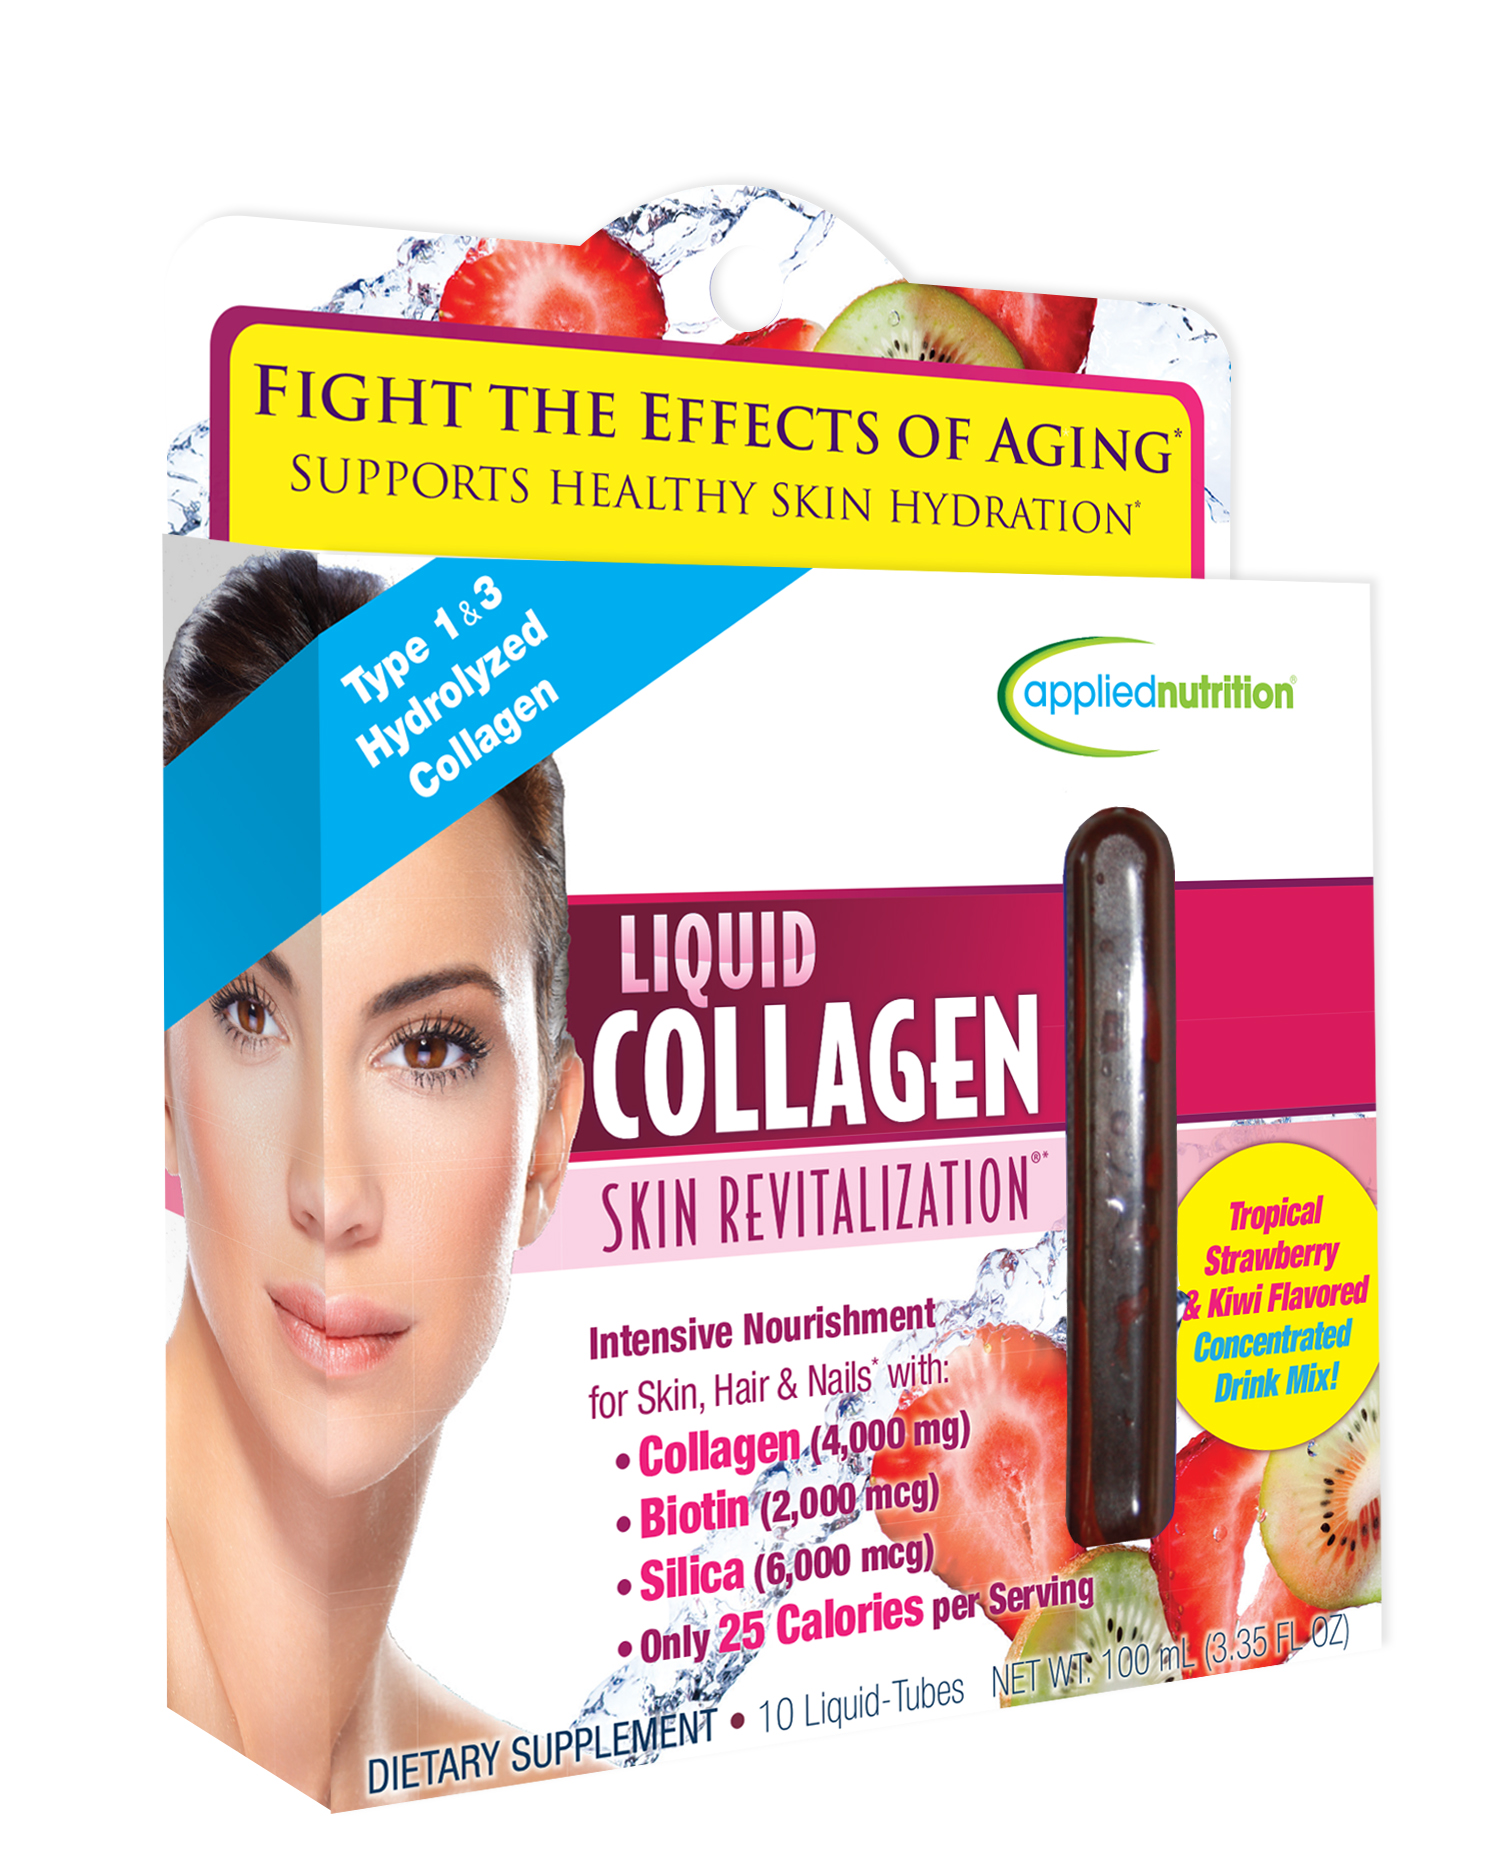 Applied Nutrition Liquid Collagen Skin Revitalization Liquid Drink Mix - Tropical Strawberry & Kiwi - 10ct